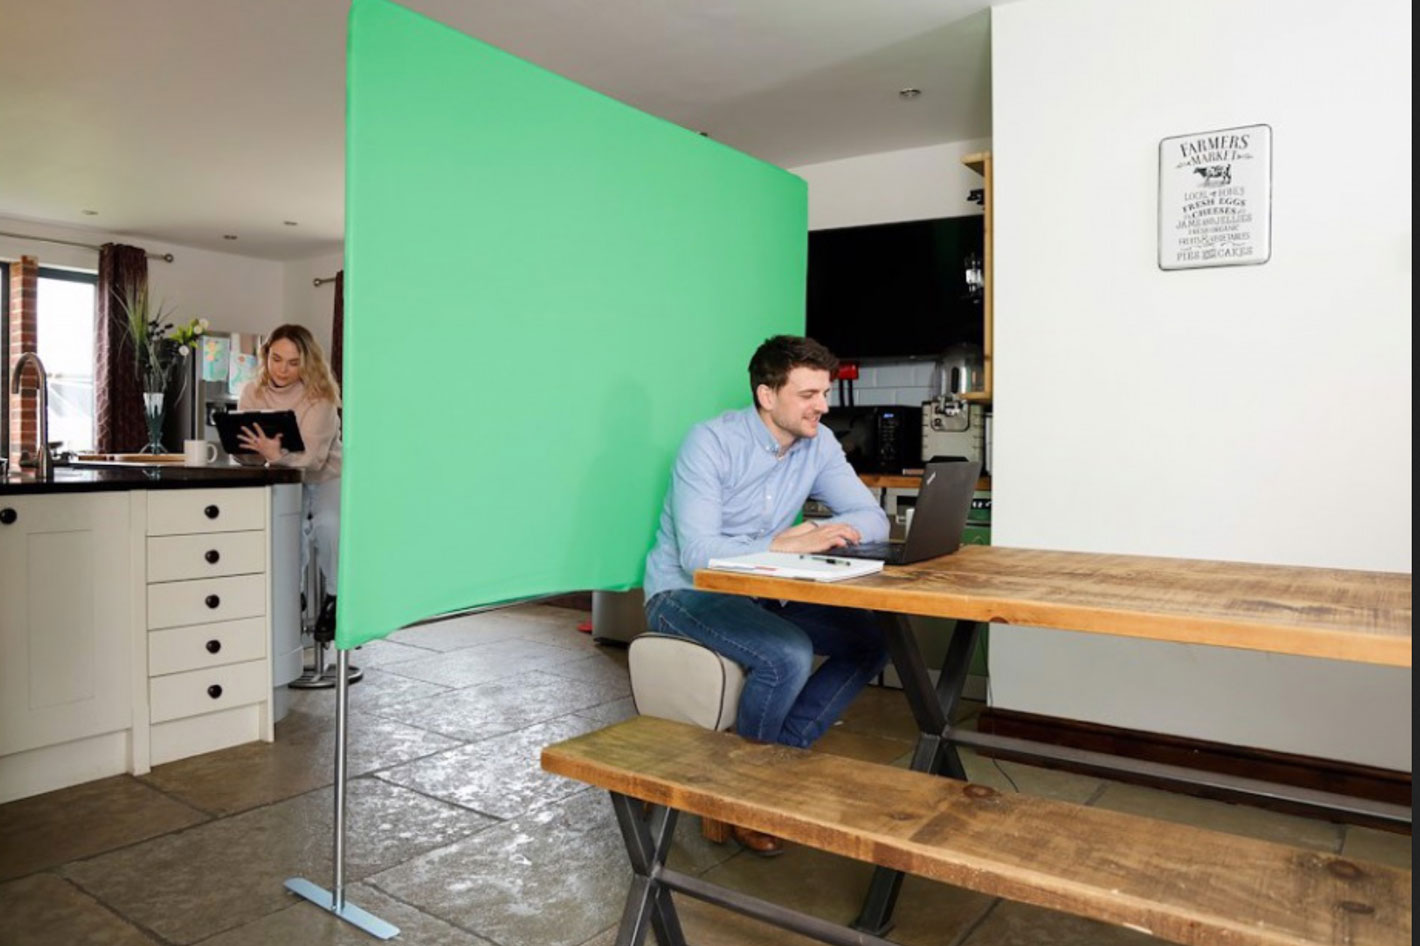 Manfrotto introduces backgrounds for video calls